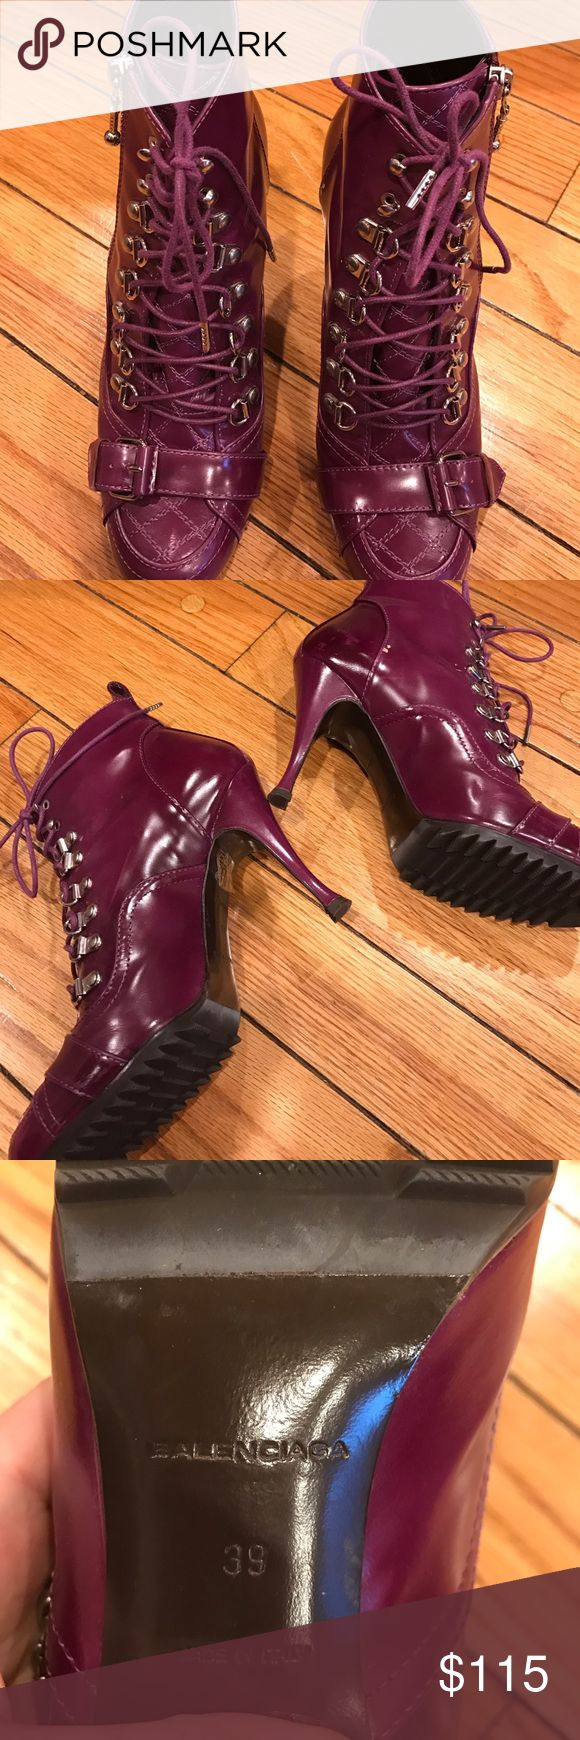 Balenciaga purple ankle boot size 39 Trendy lace up and buckle detail purple high heel ankle boots fits more like an 8.5 Balenciaga Shoes Heels